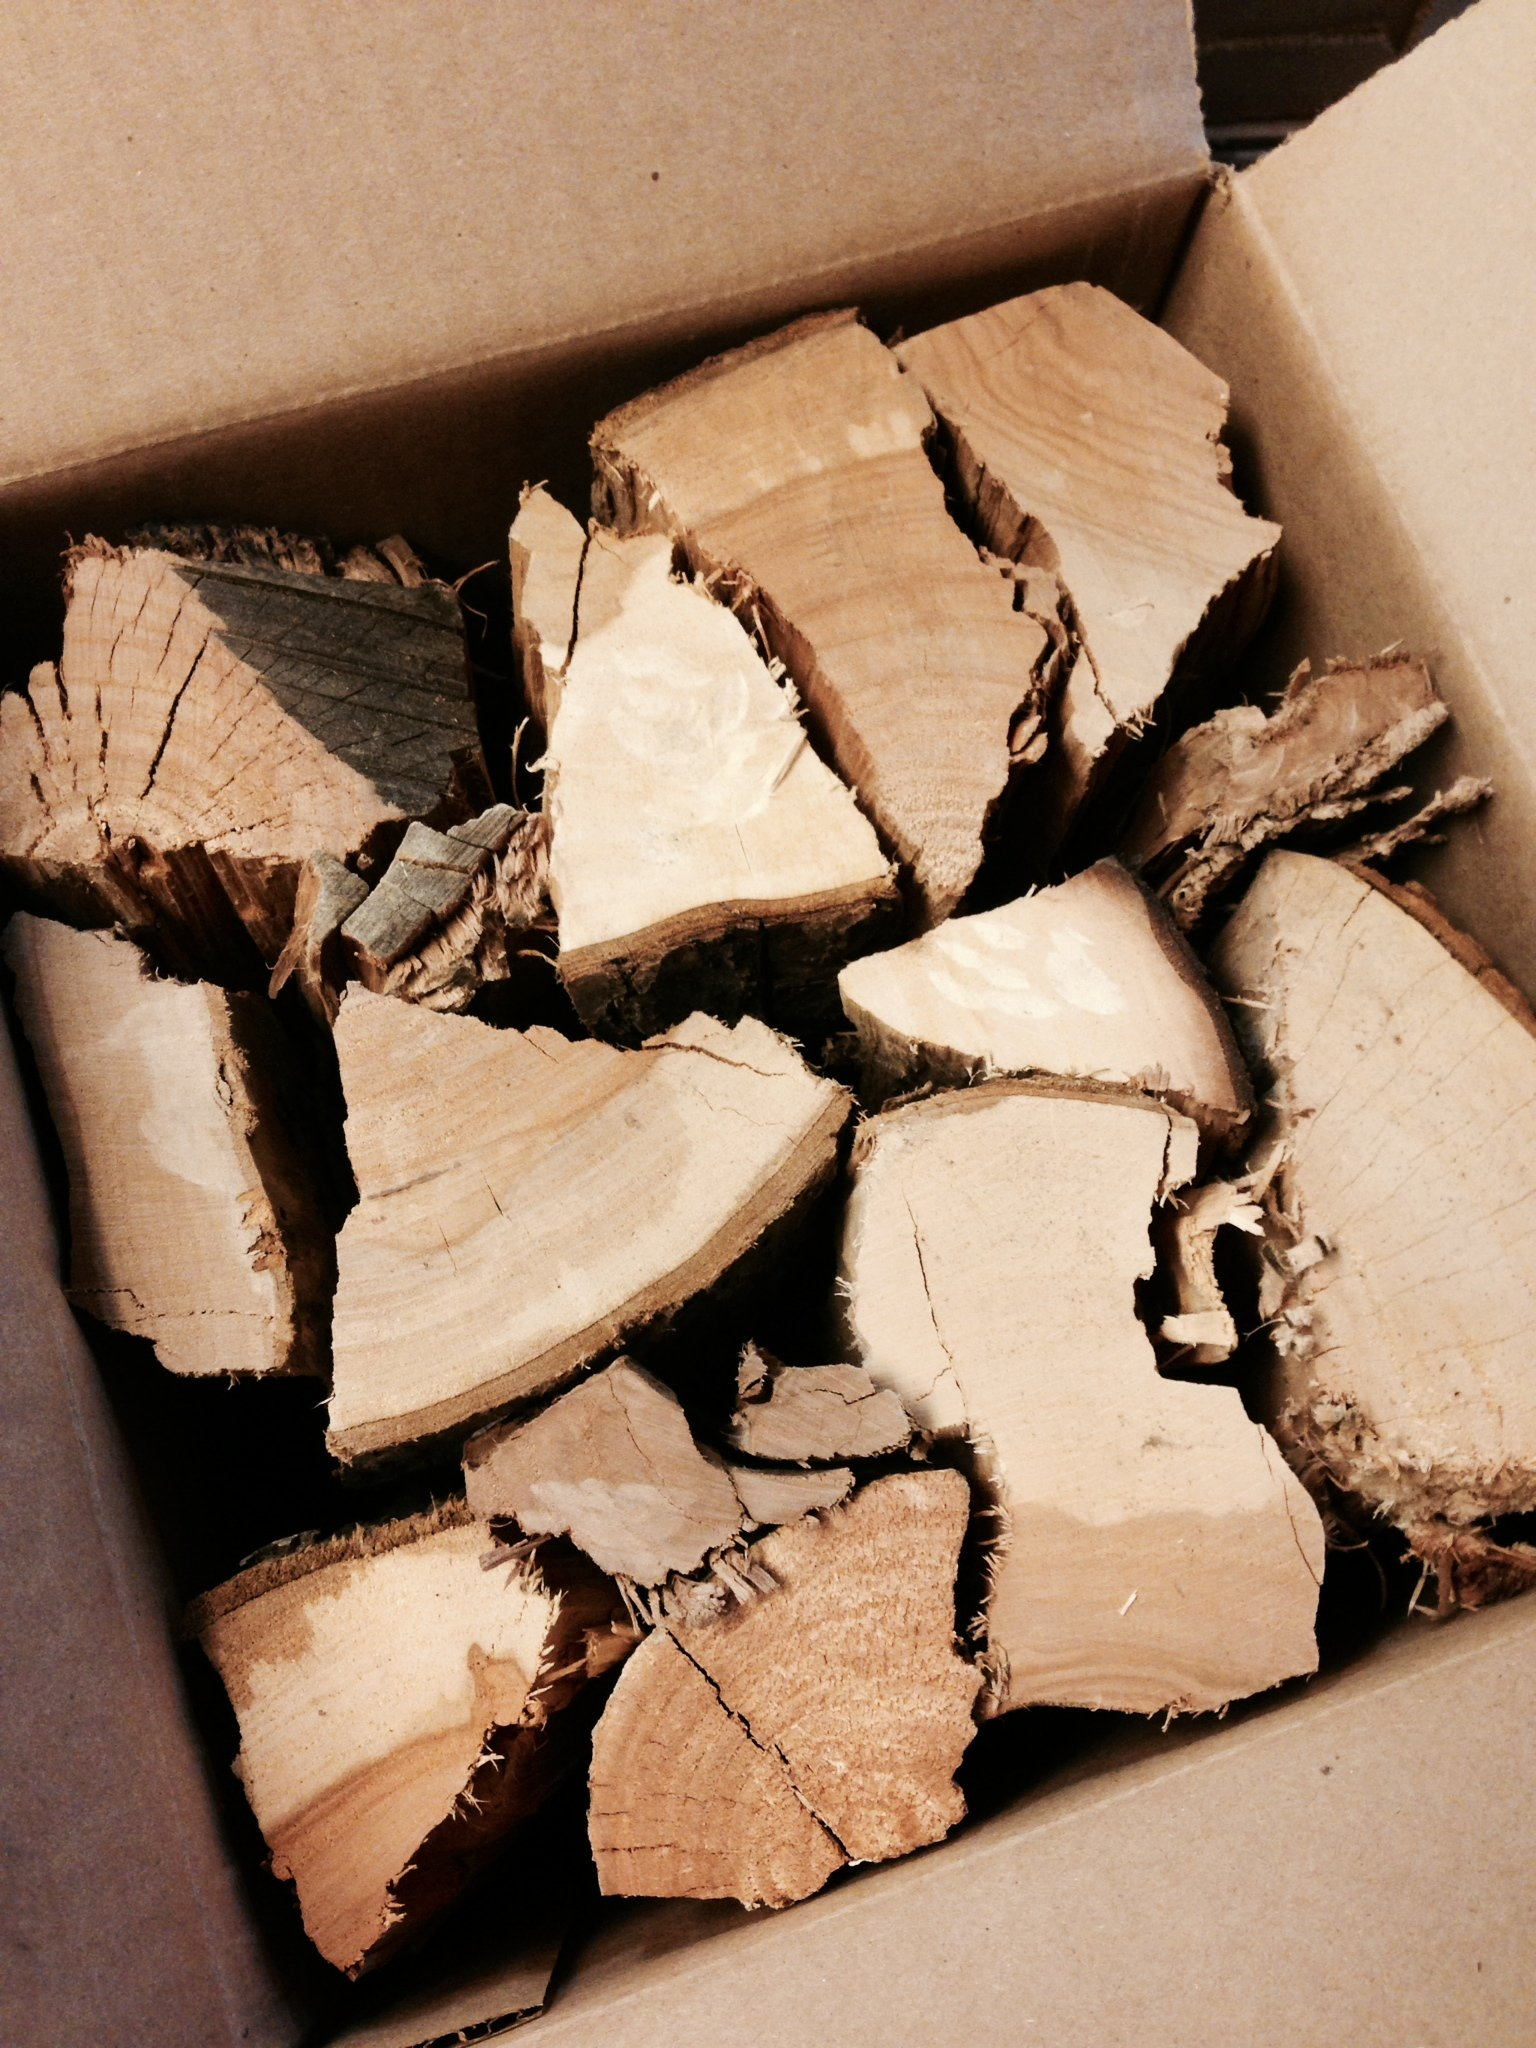 J.C.'s Smoking Wood Sticks - 730 Cu Inch Box - Maple by J.C.'s Smoking Wood Products